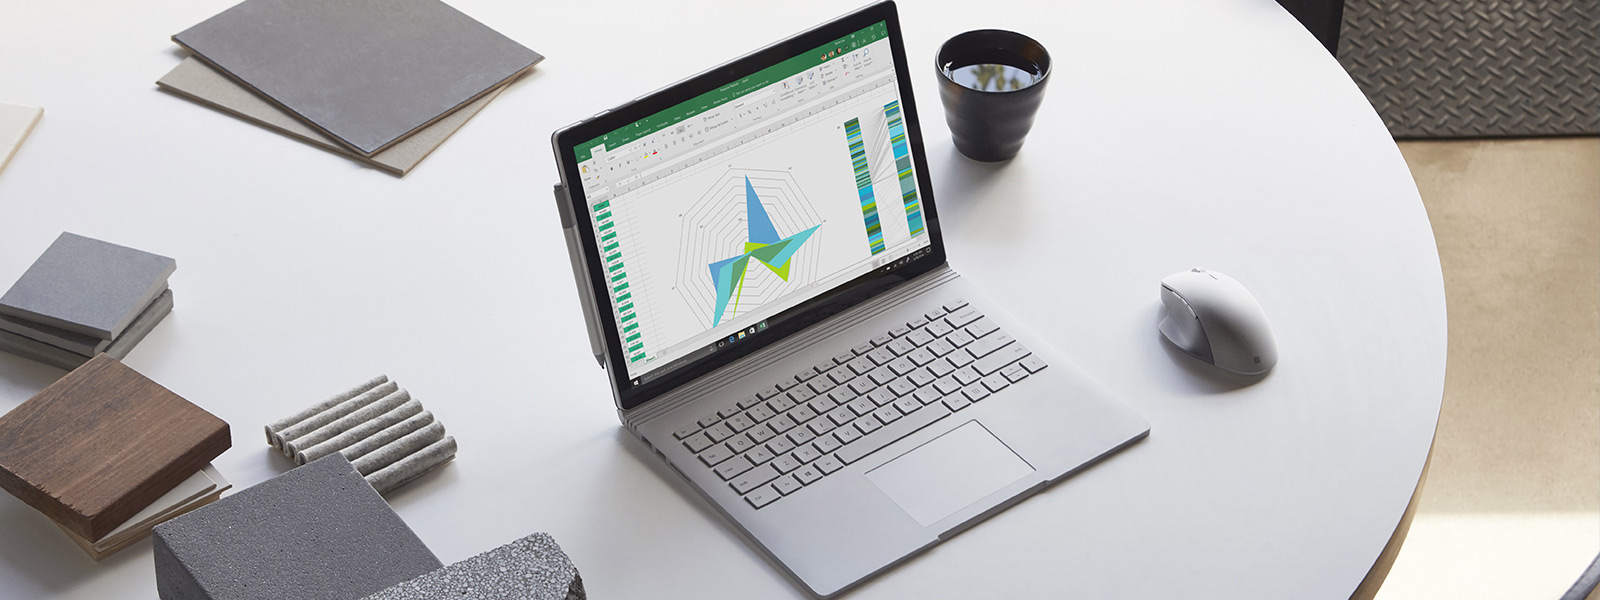 Surface Book 2 上の Excel